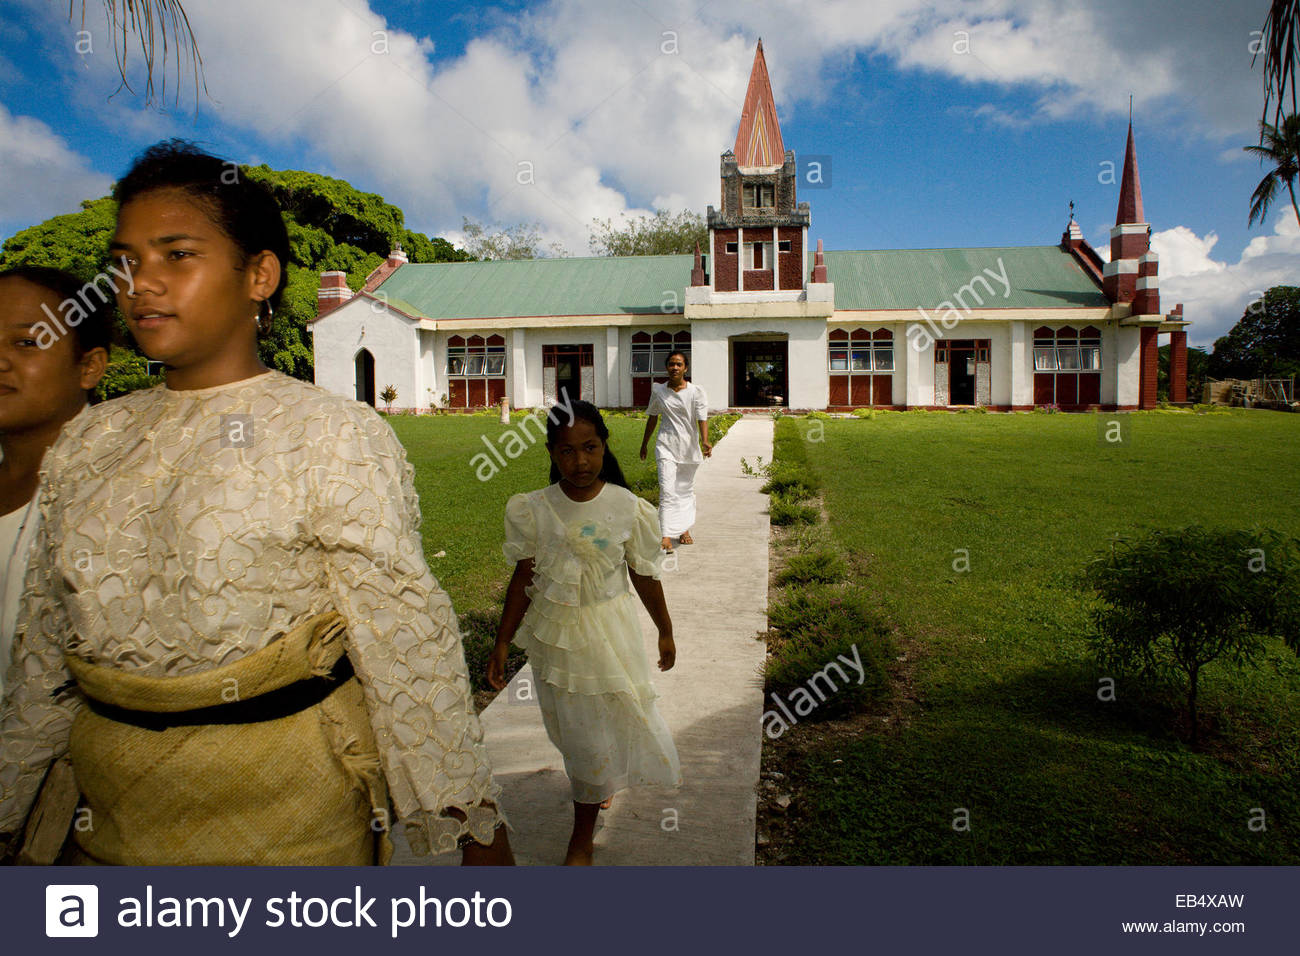 A family departs church on Easter morning. - Stock Image